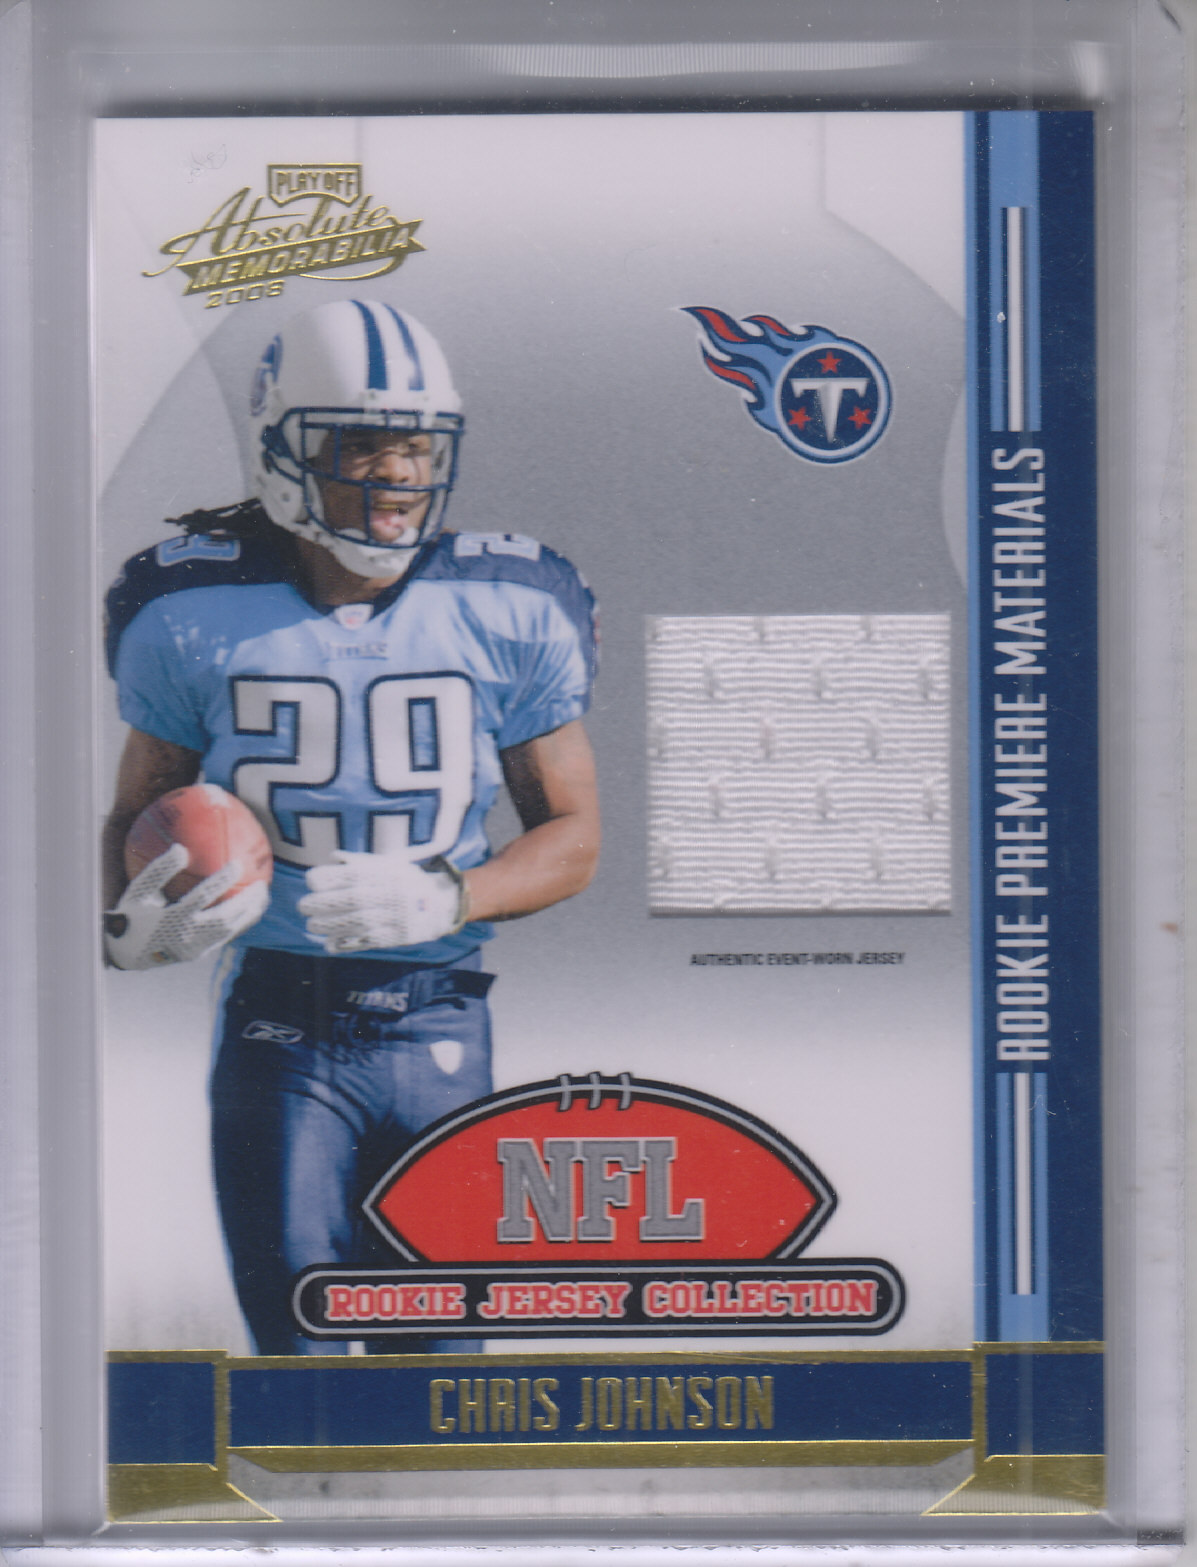 2008 Absolute Memorabilia Rookie Jersey Collection #2 Chris Johnson